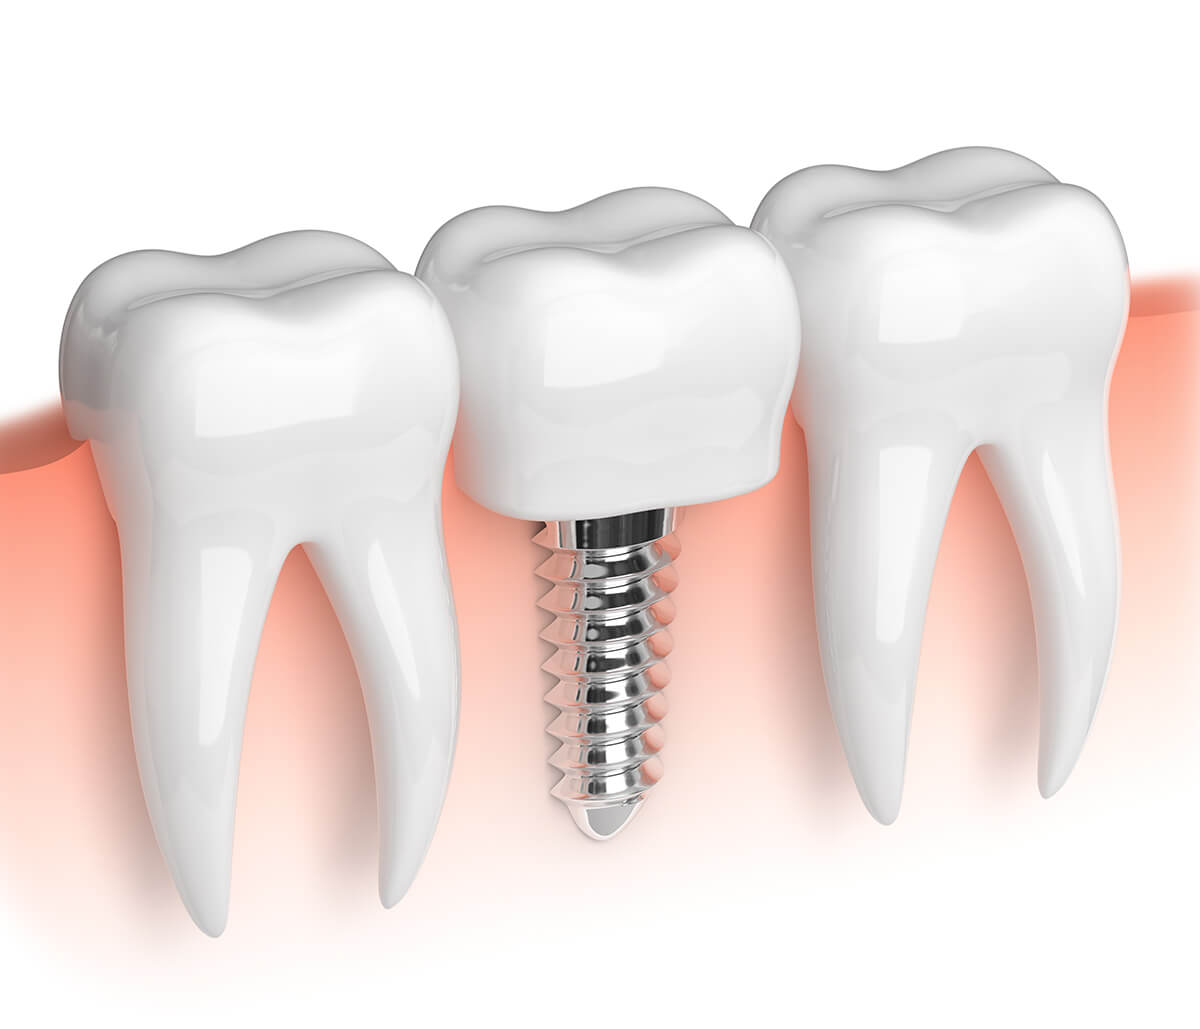 Where Can I Find a Dentist for Tooth Implants in Burlington, ON Area?